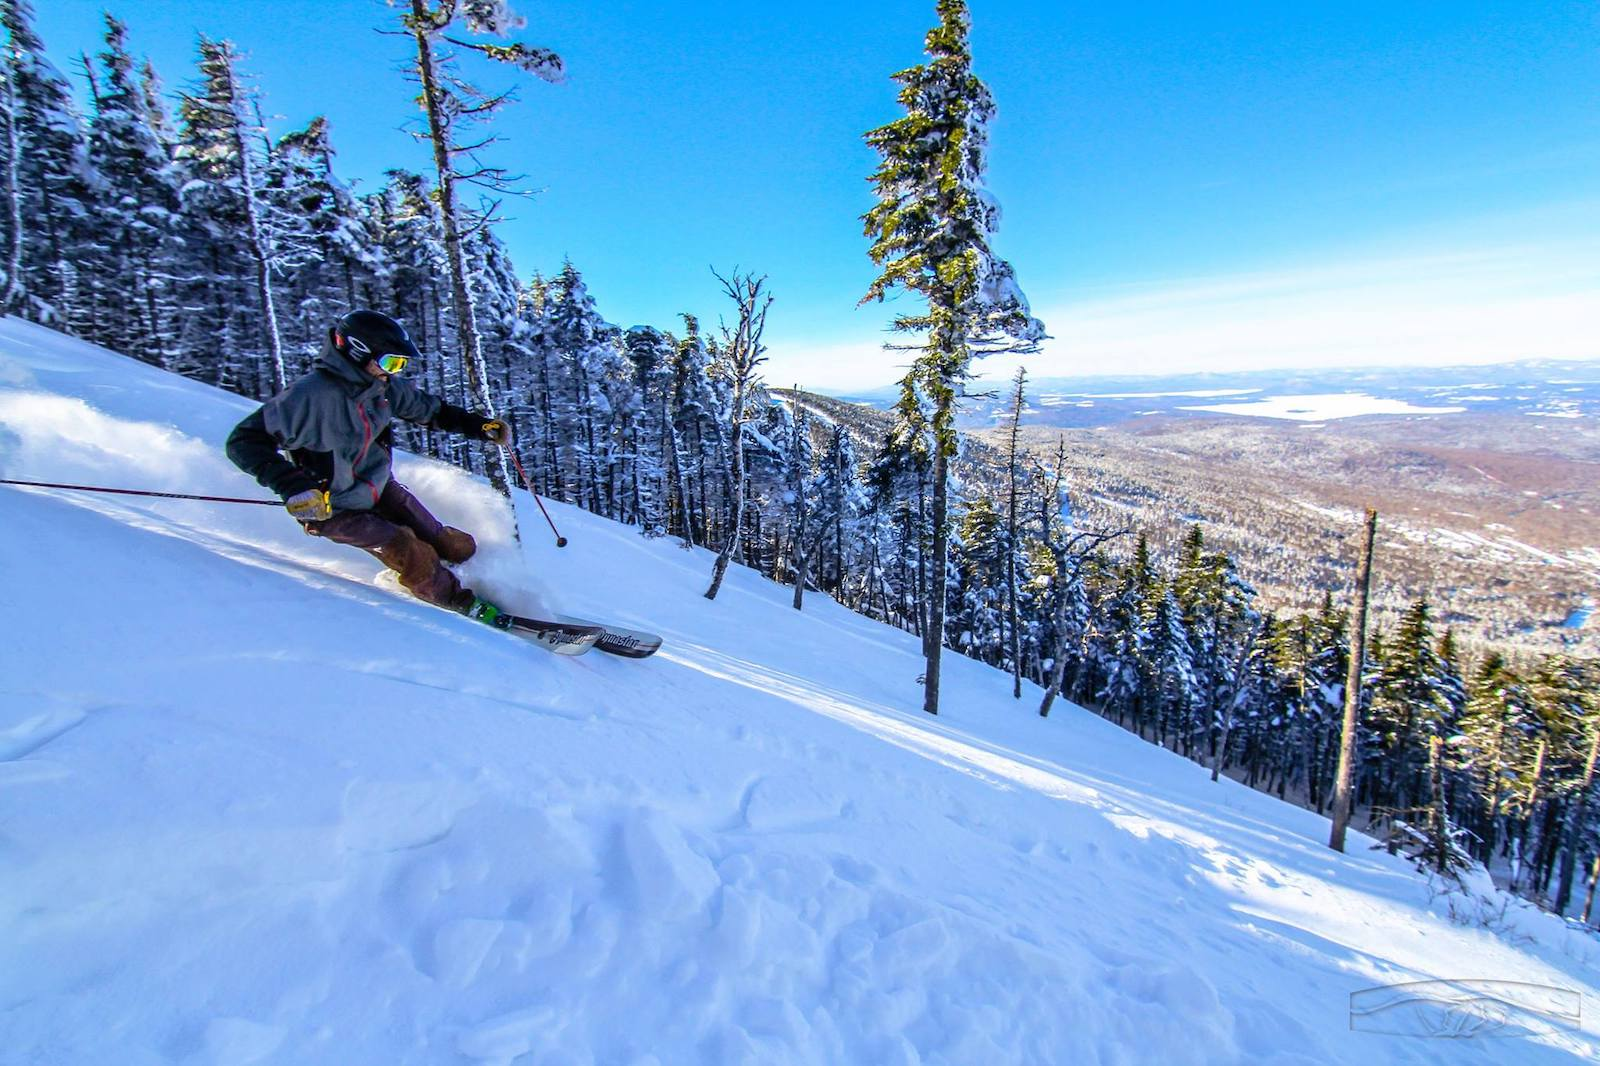 Image of a skier going through the trees at Saddleback Mountain Ski Resort in Maine